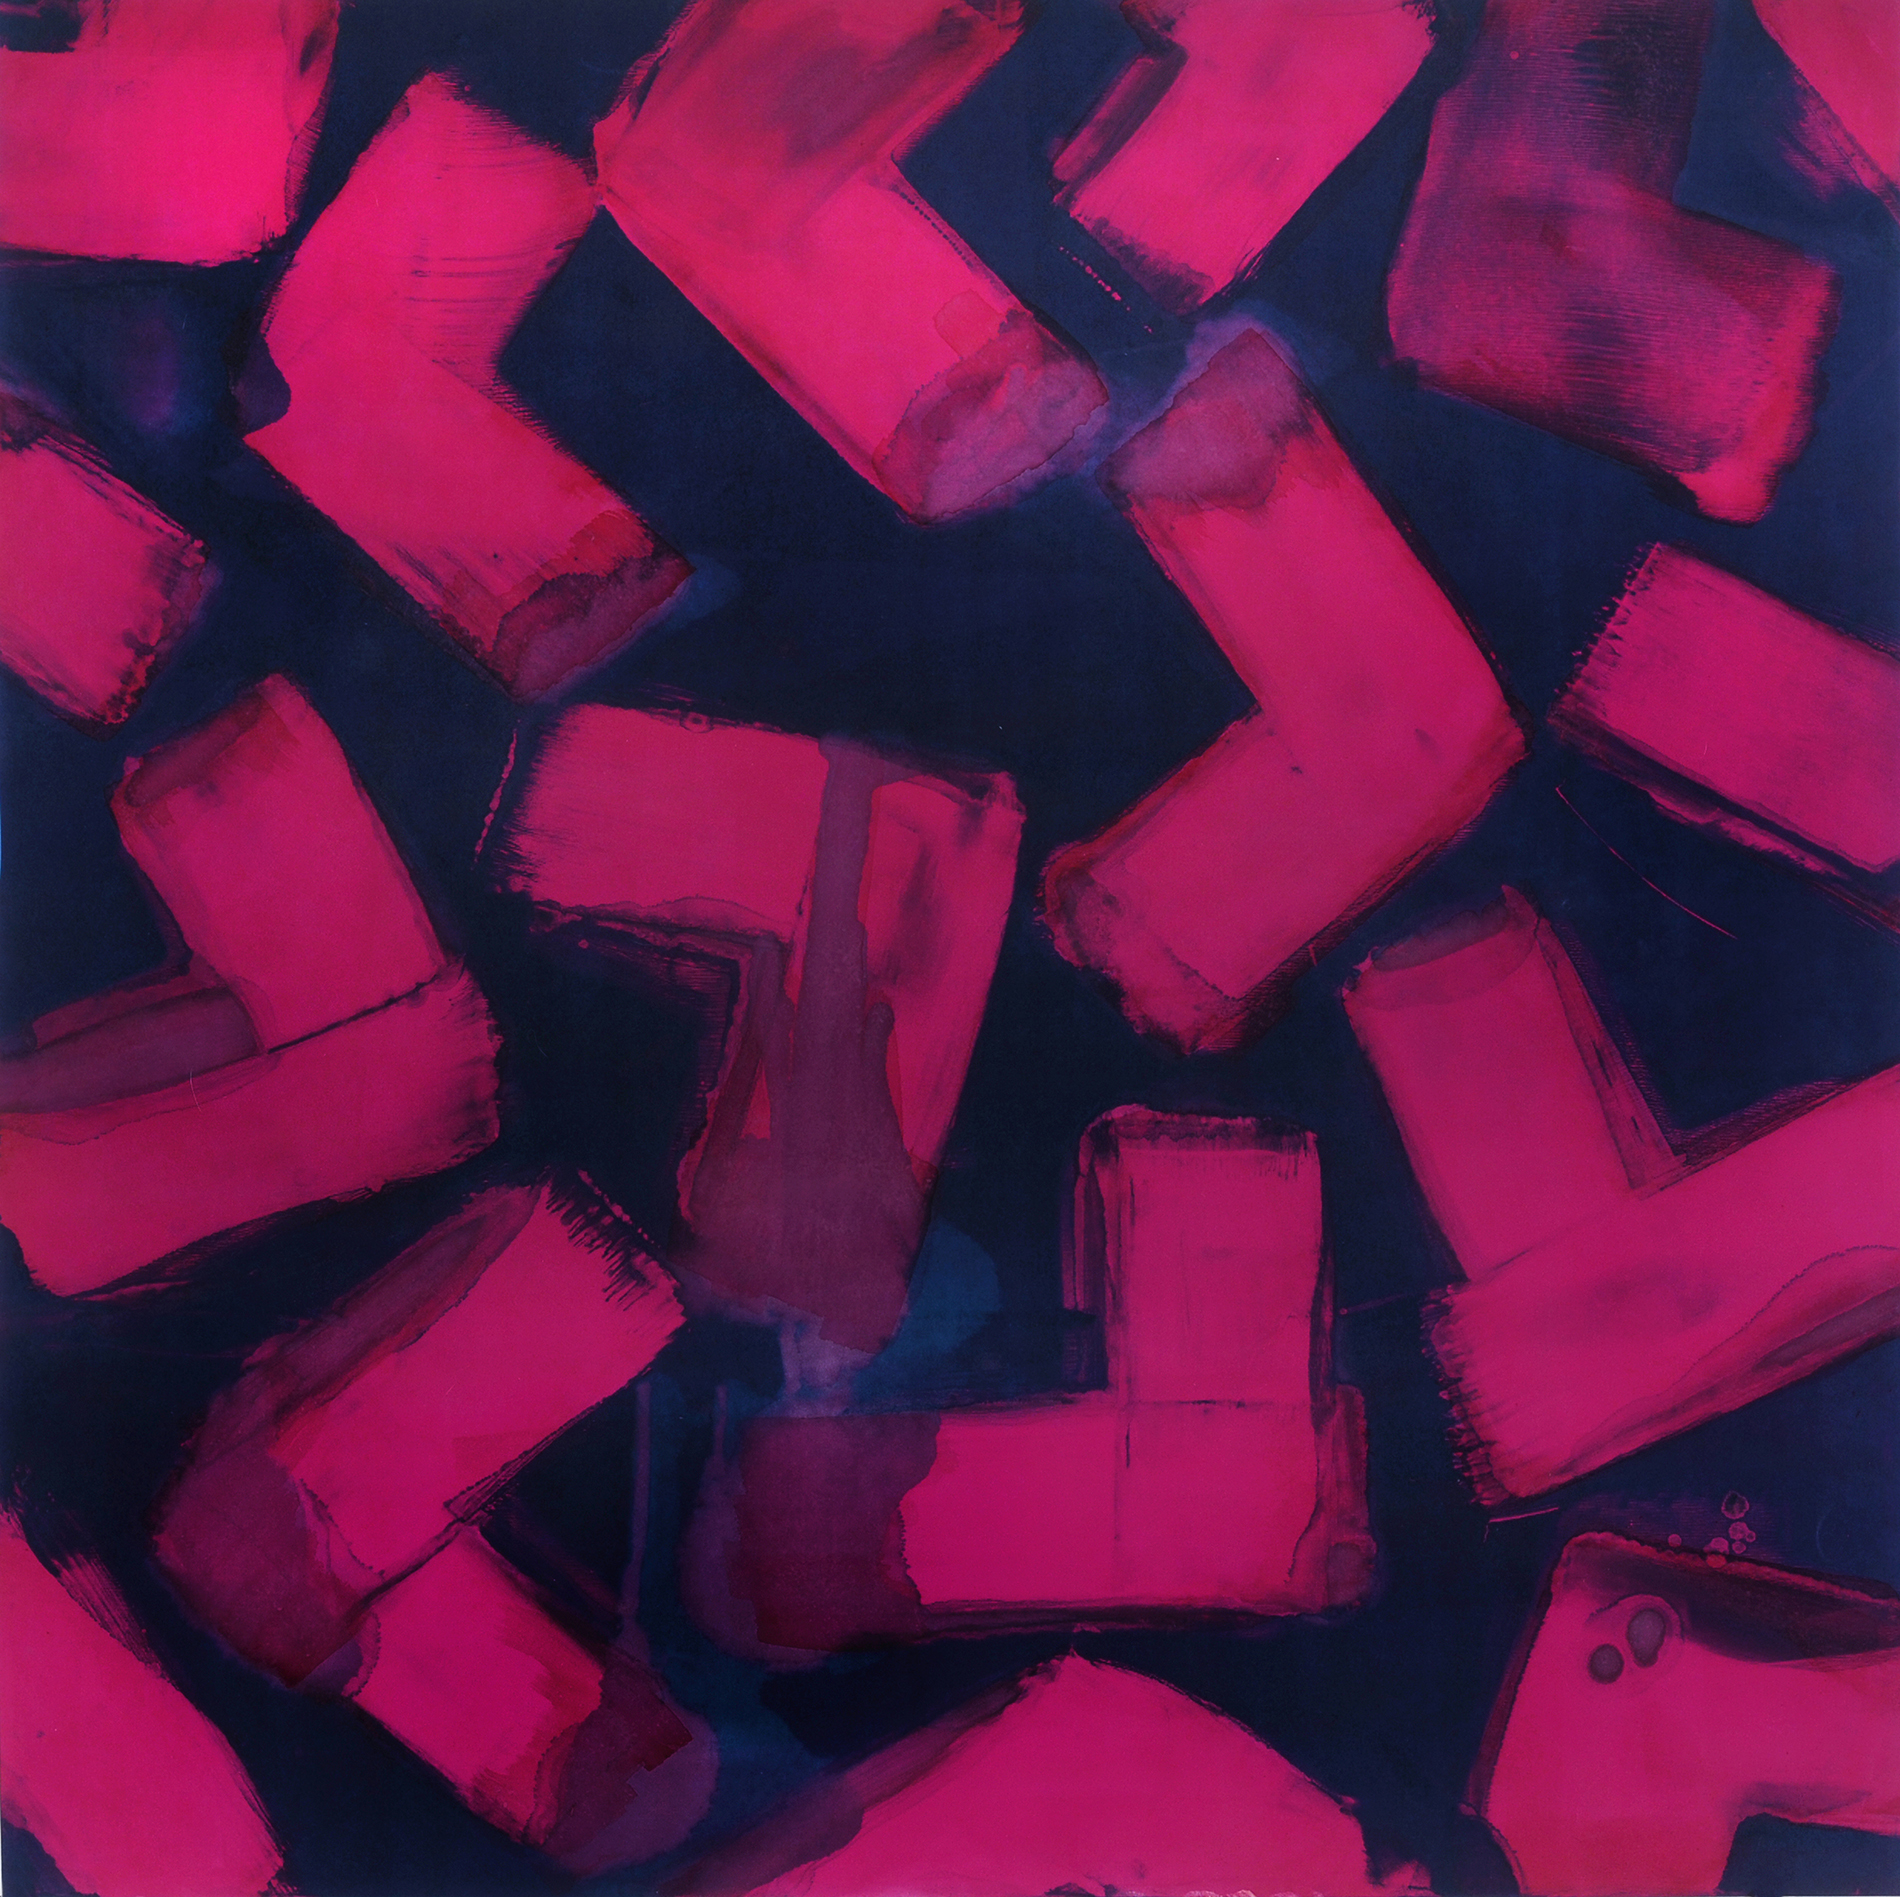 ELECTRA LUX 2009 Monotype 35 x 35 inches